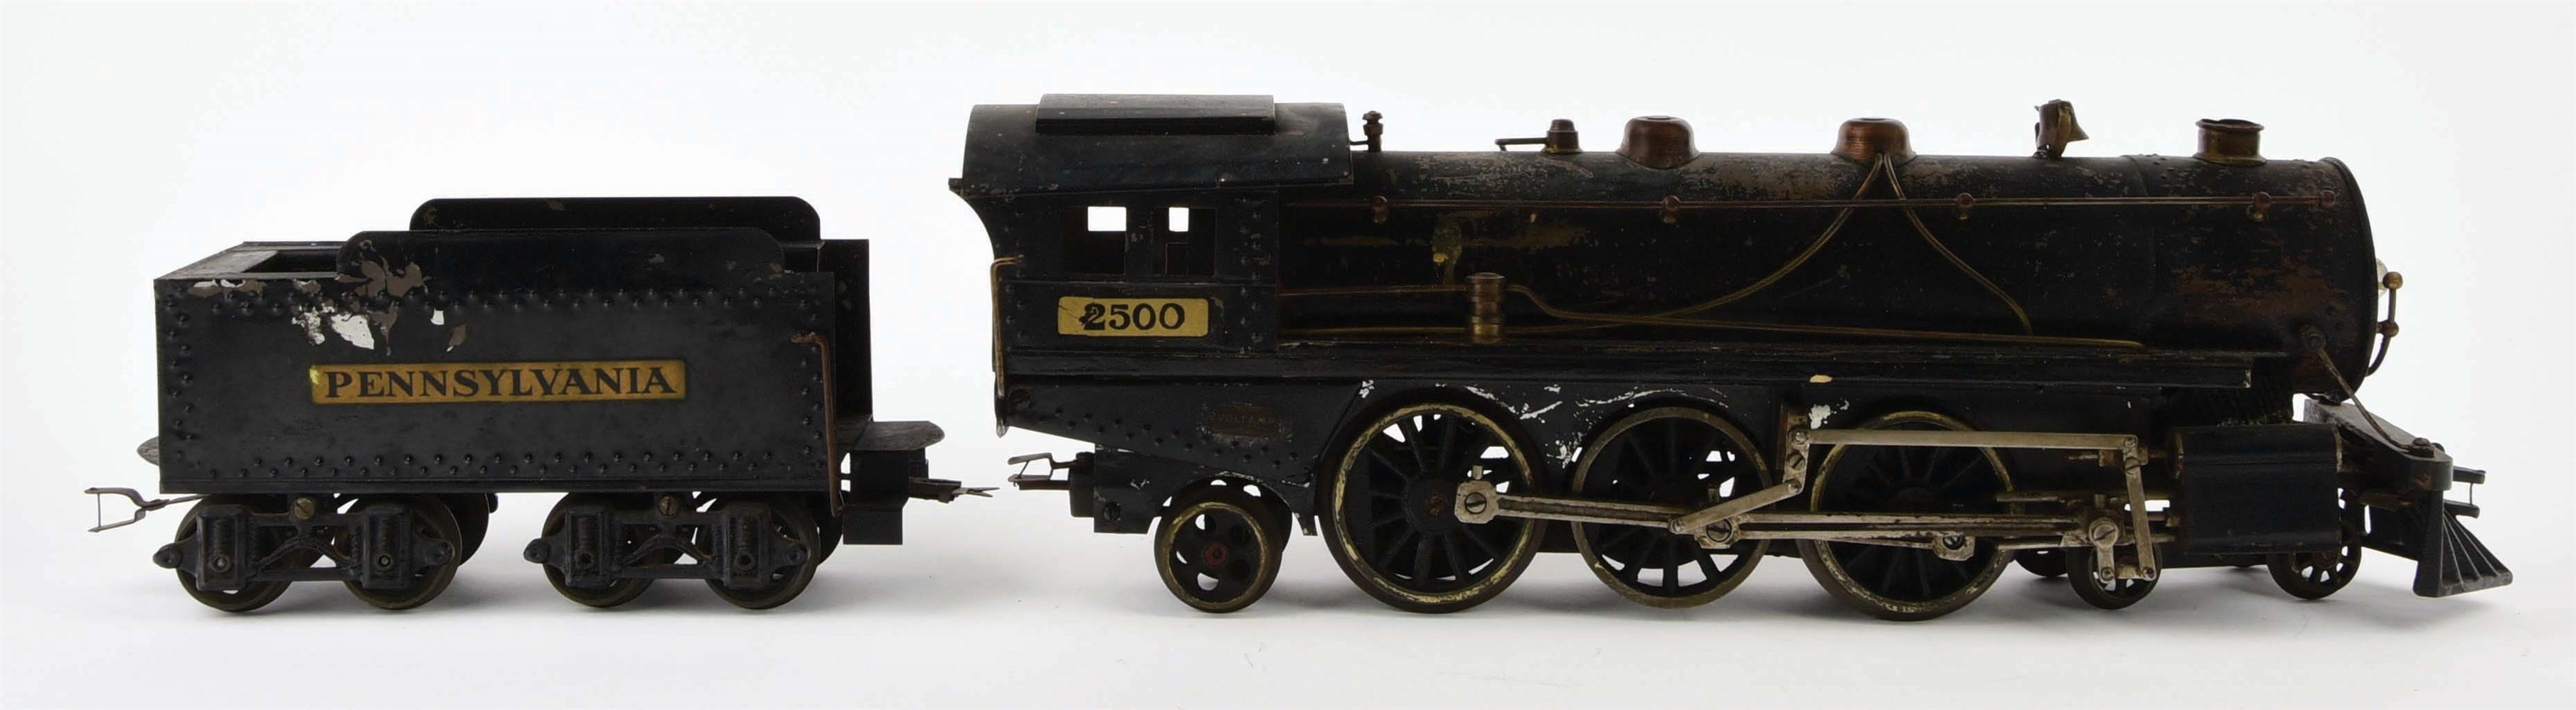 PRE-WAR VOLTAMP LARGE 2500 STEAM ENGINE AND MATCHING PENNSYLVANIA TENDER.